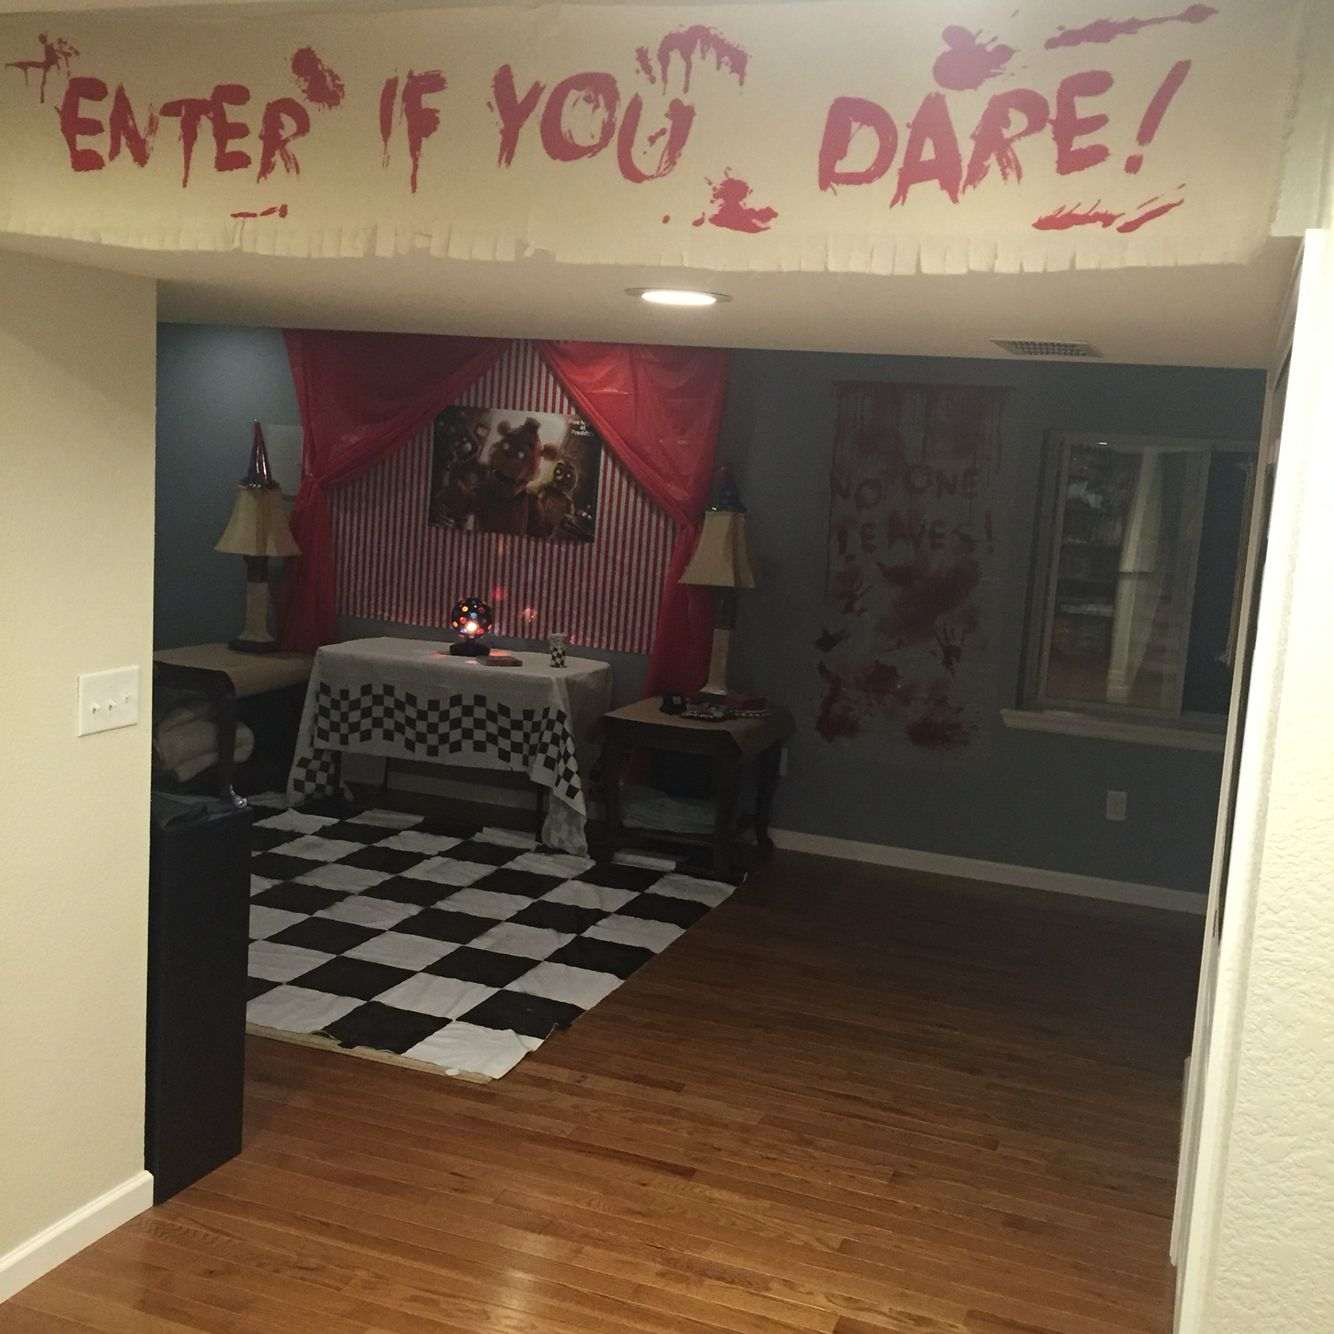 5 Decorating Ideas For Bedrooms: Five Nights At Freddy's Birthday Party